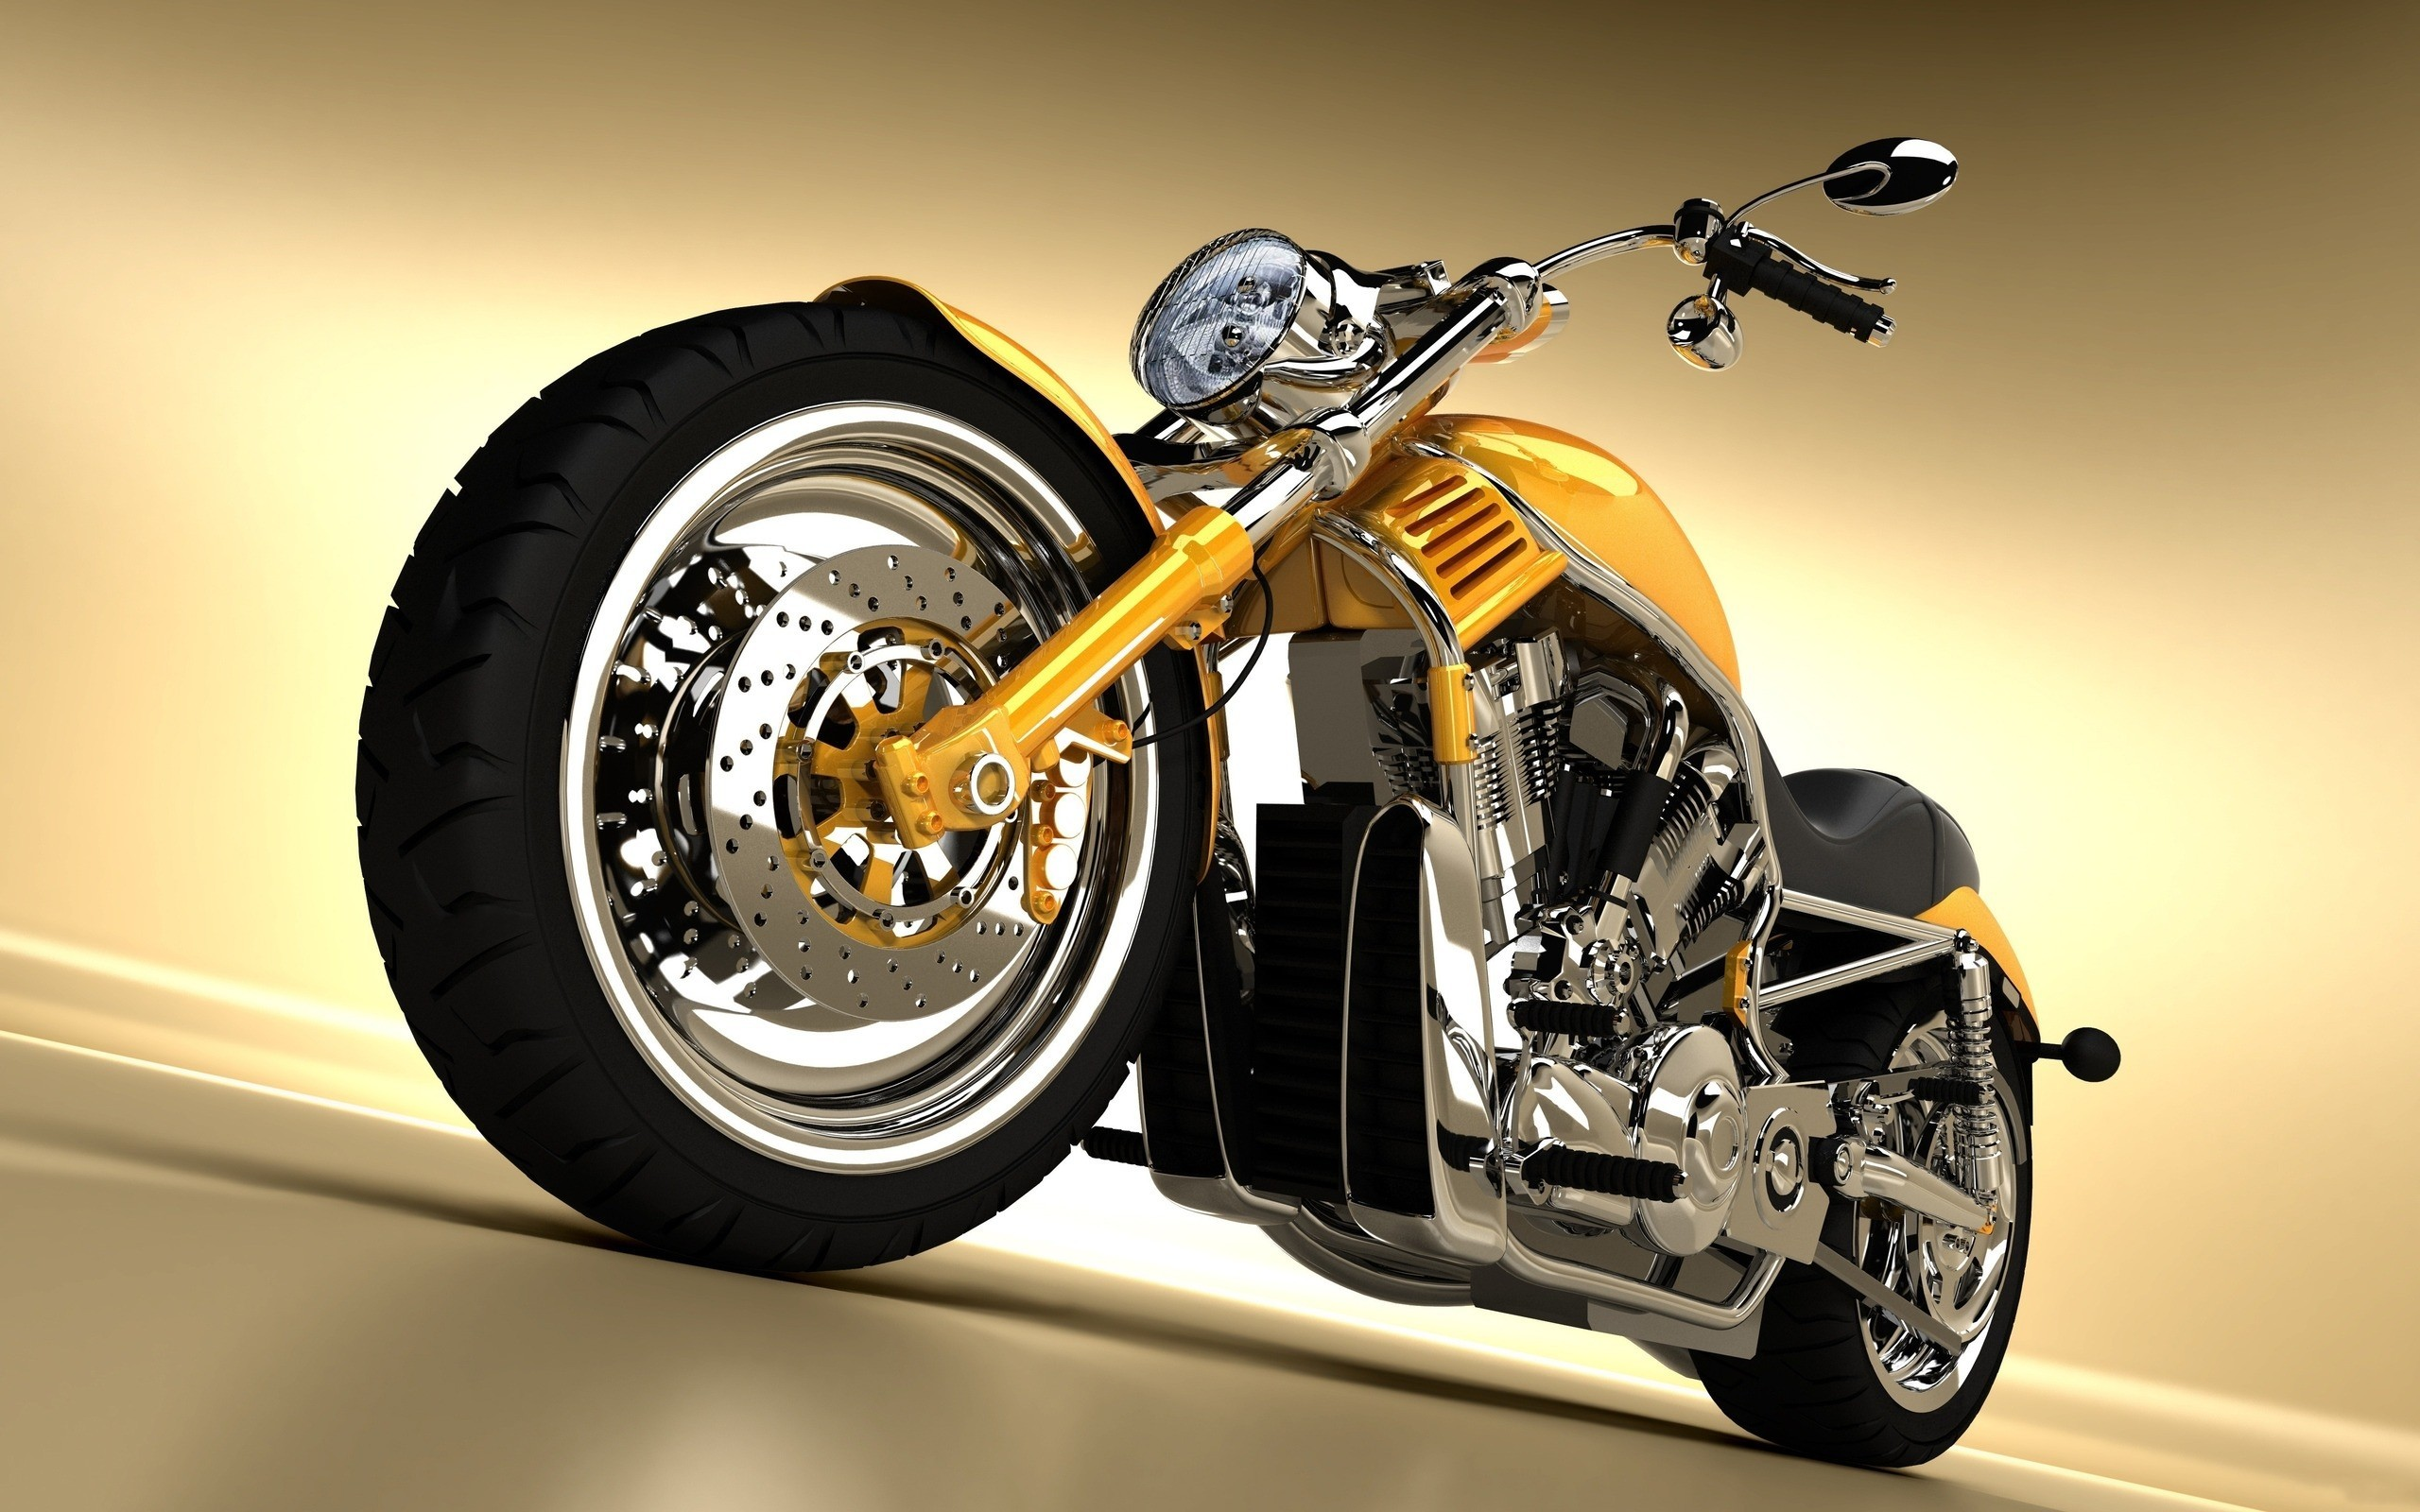 2560x1600 classic motorcycle herley davidson wallpaper